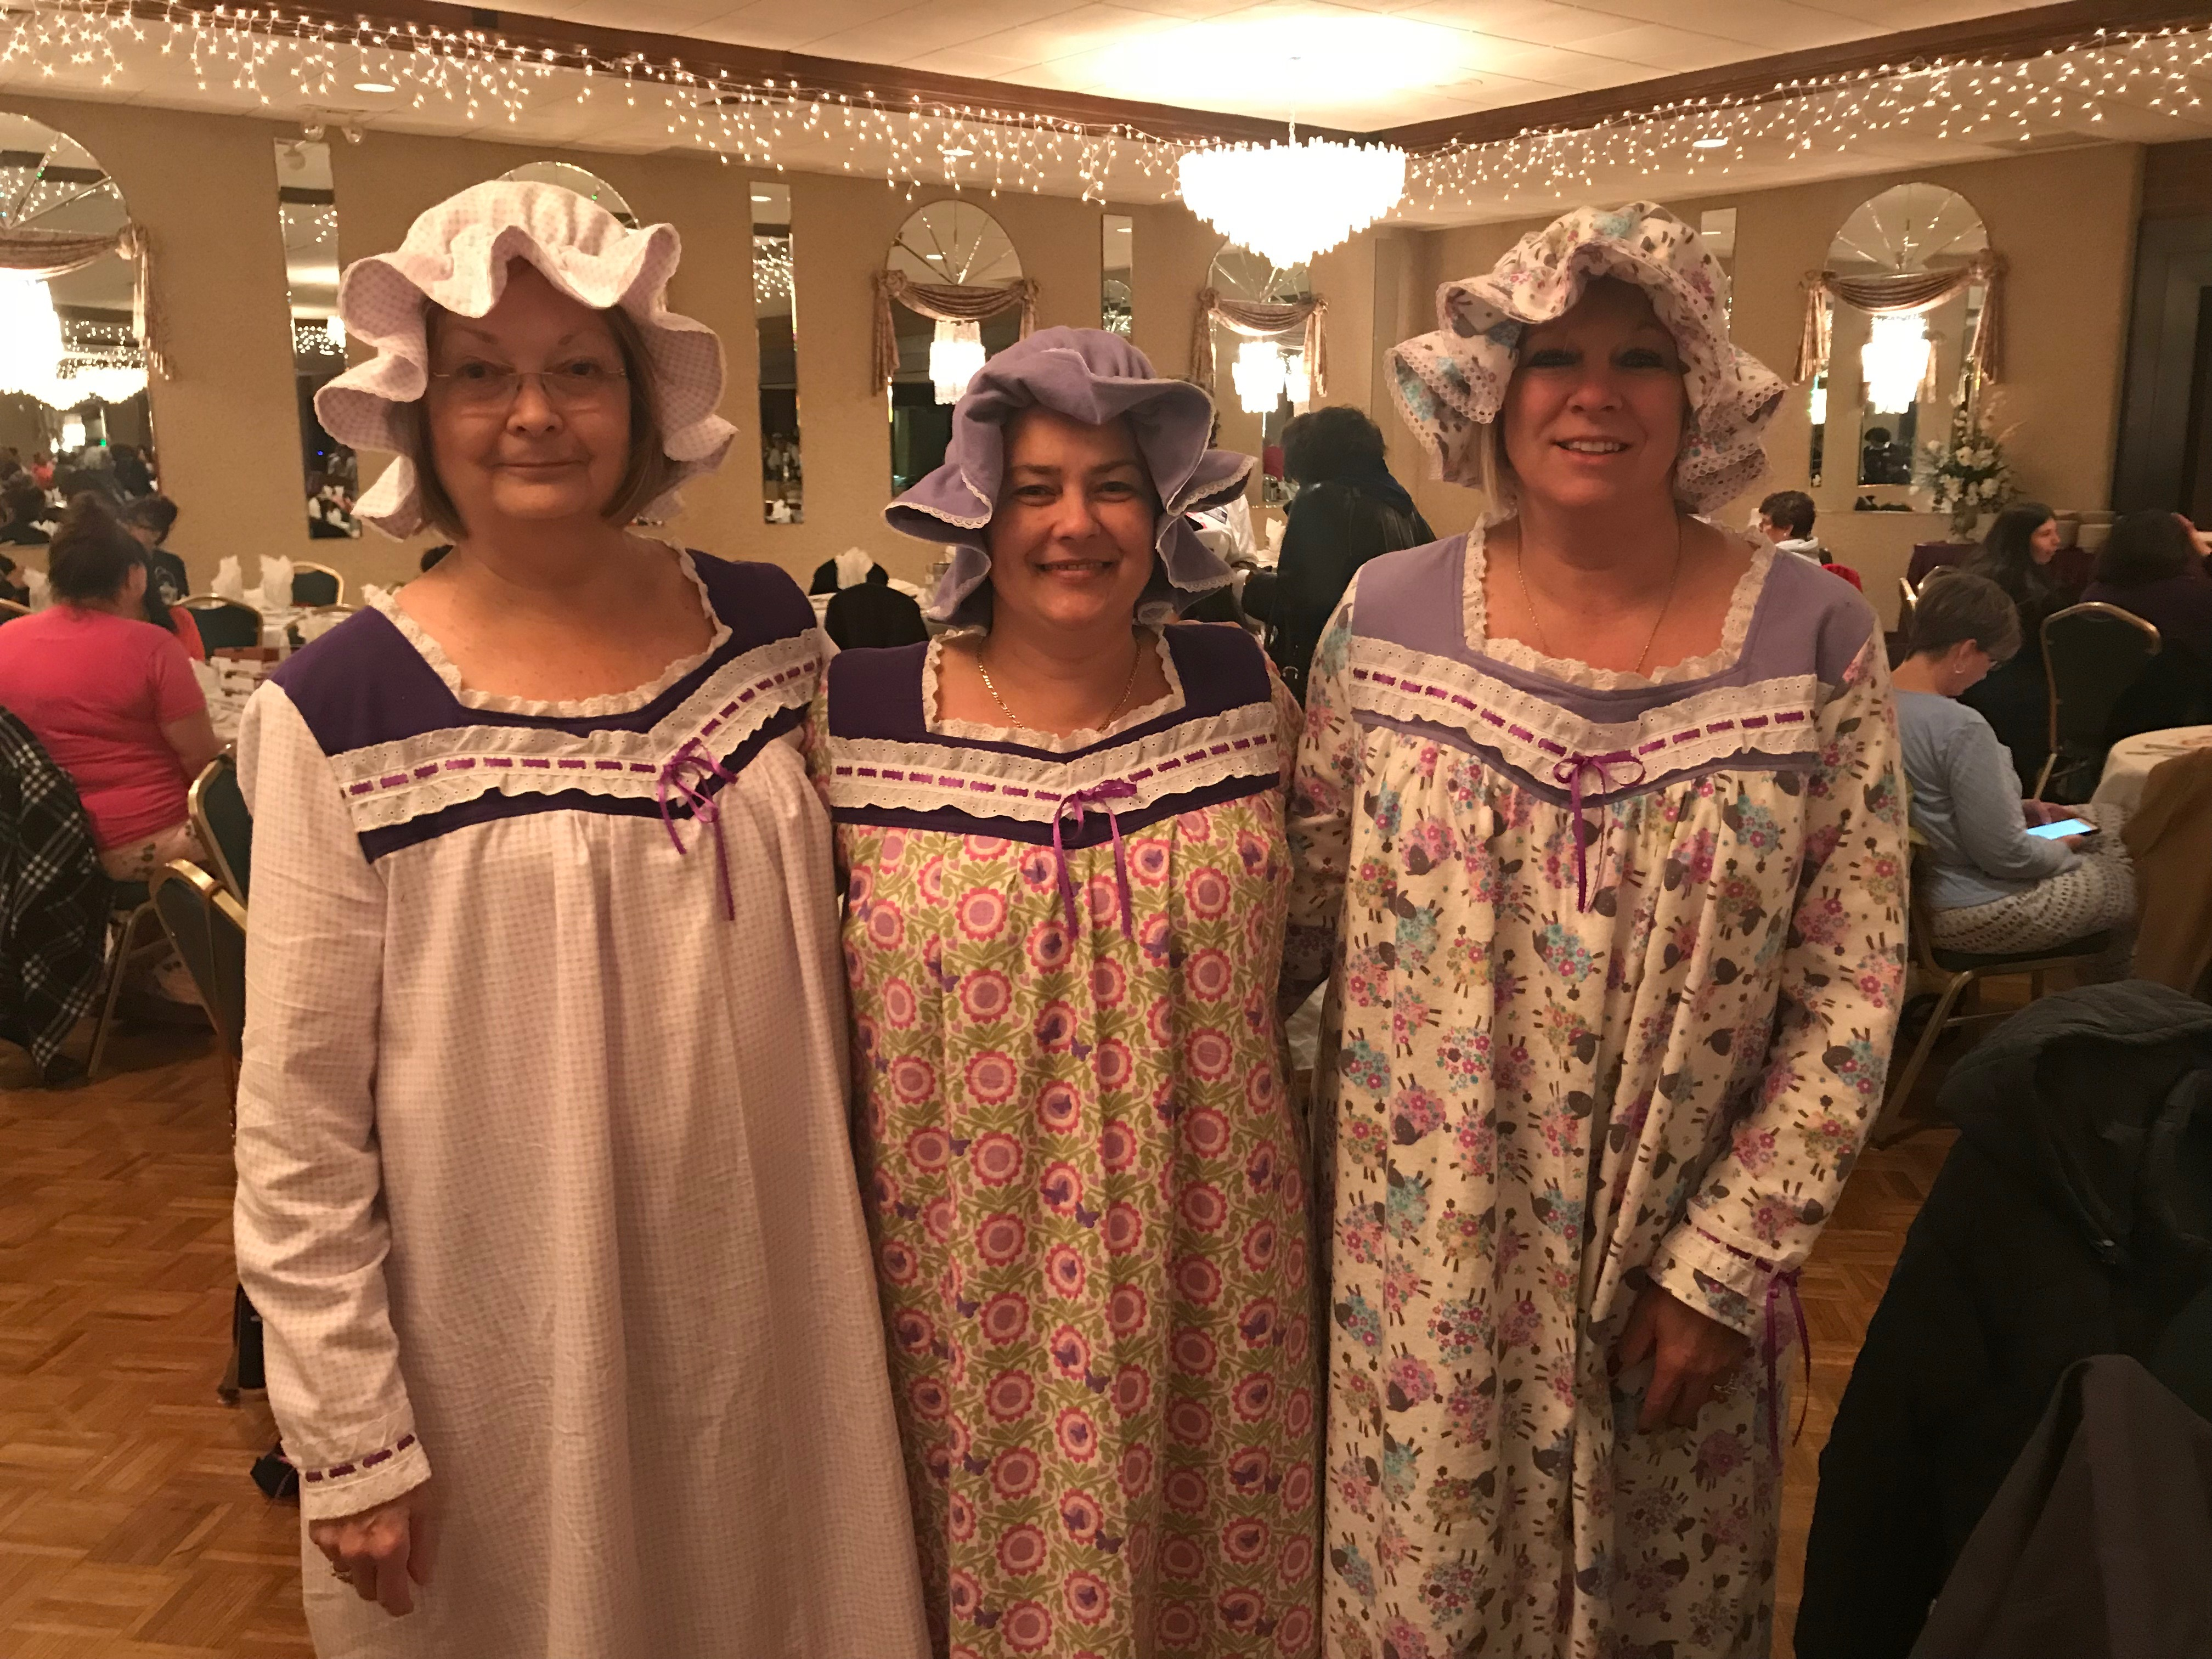 GRC Participates in PJ Party Fundraiser